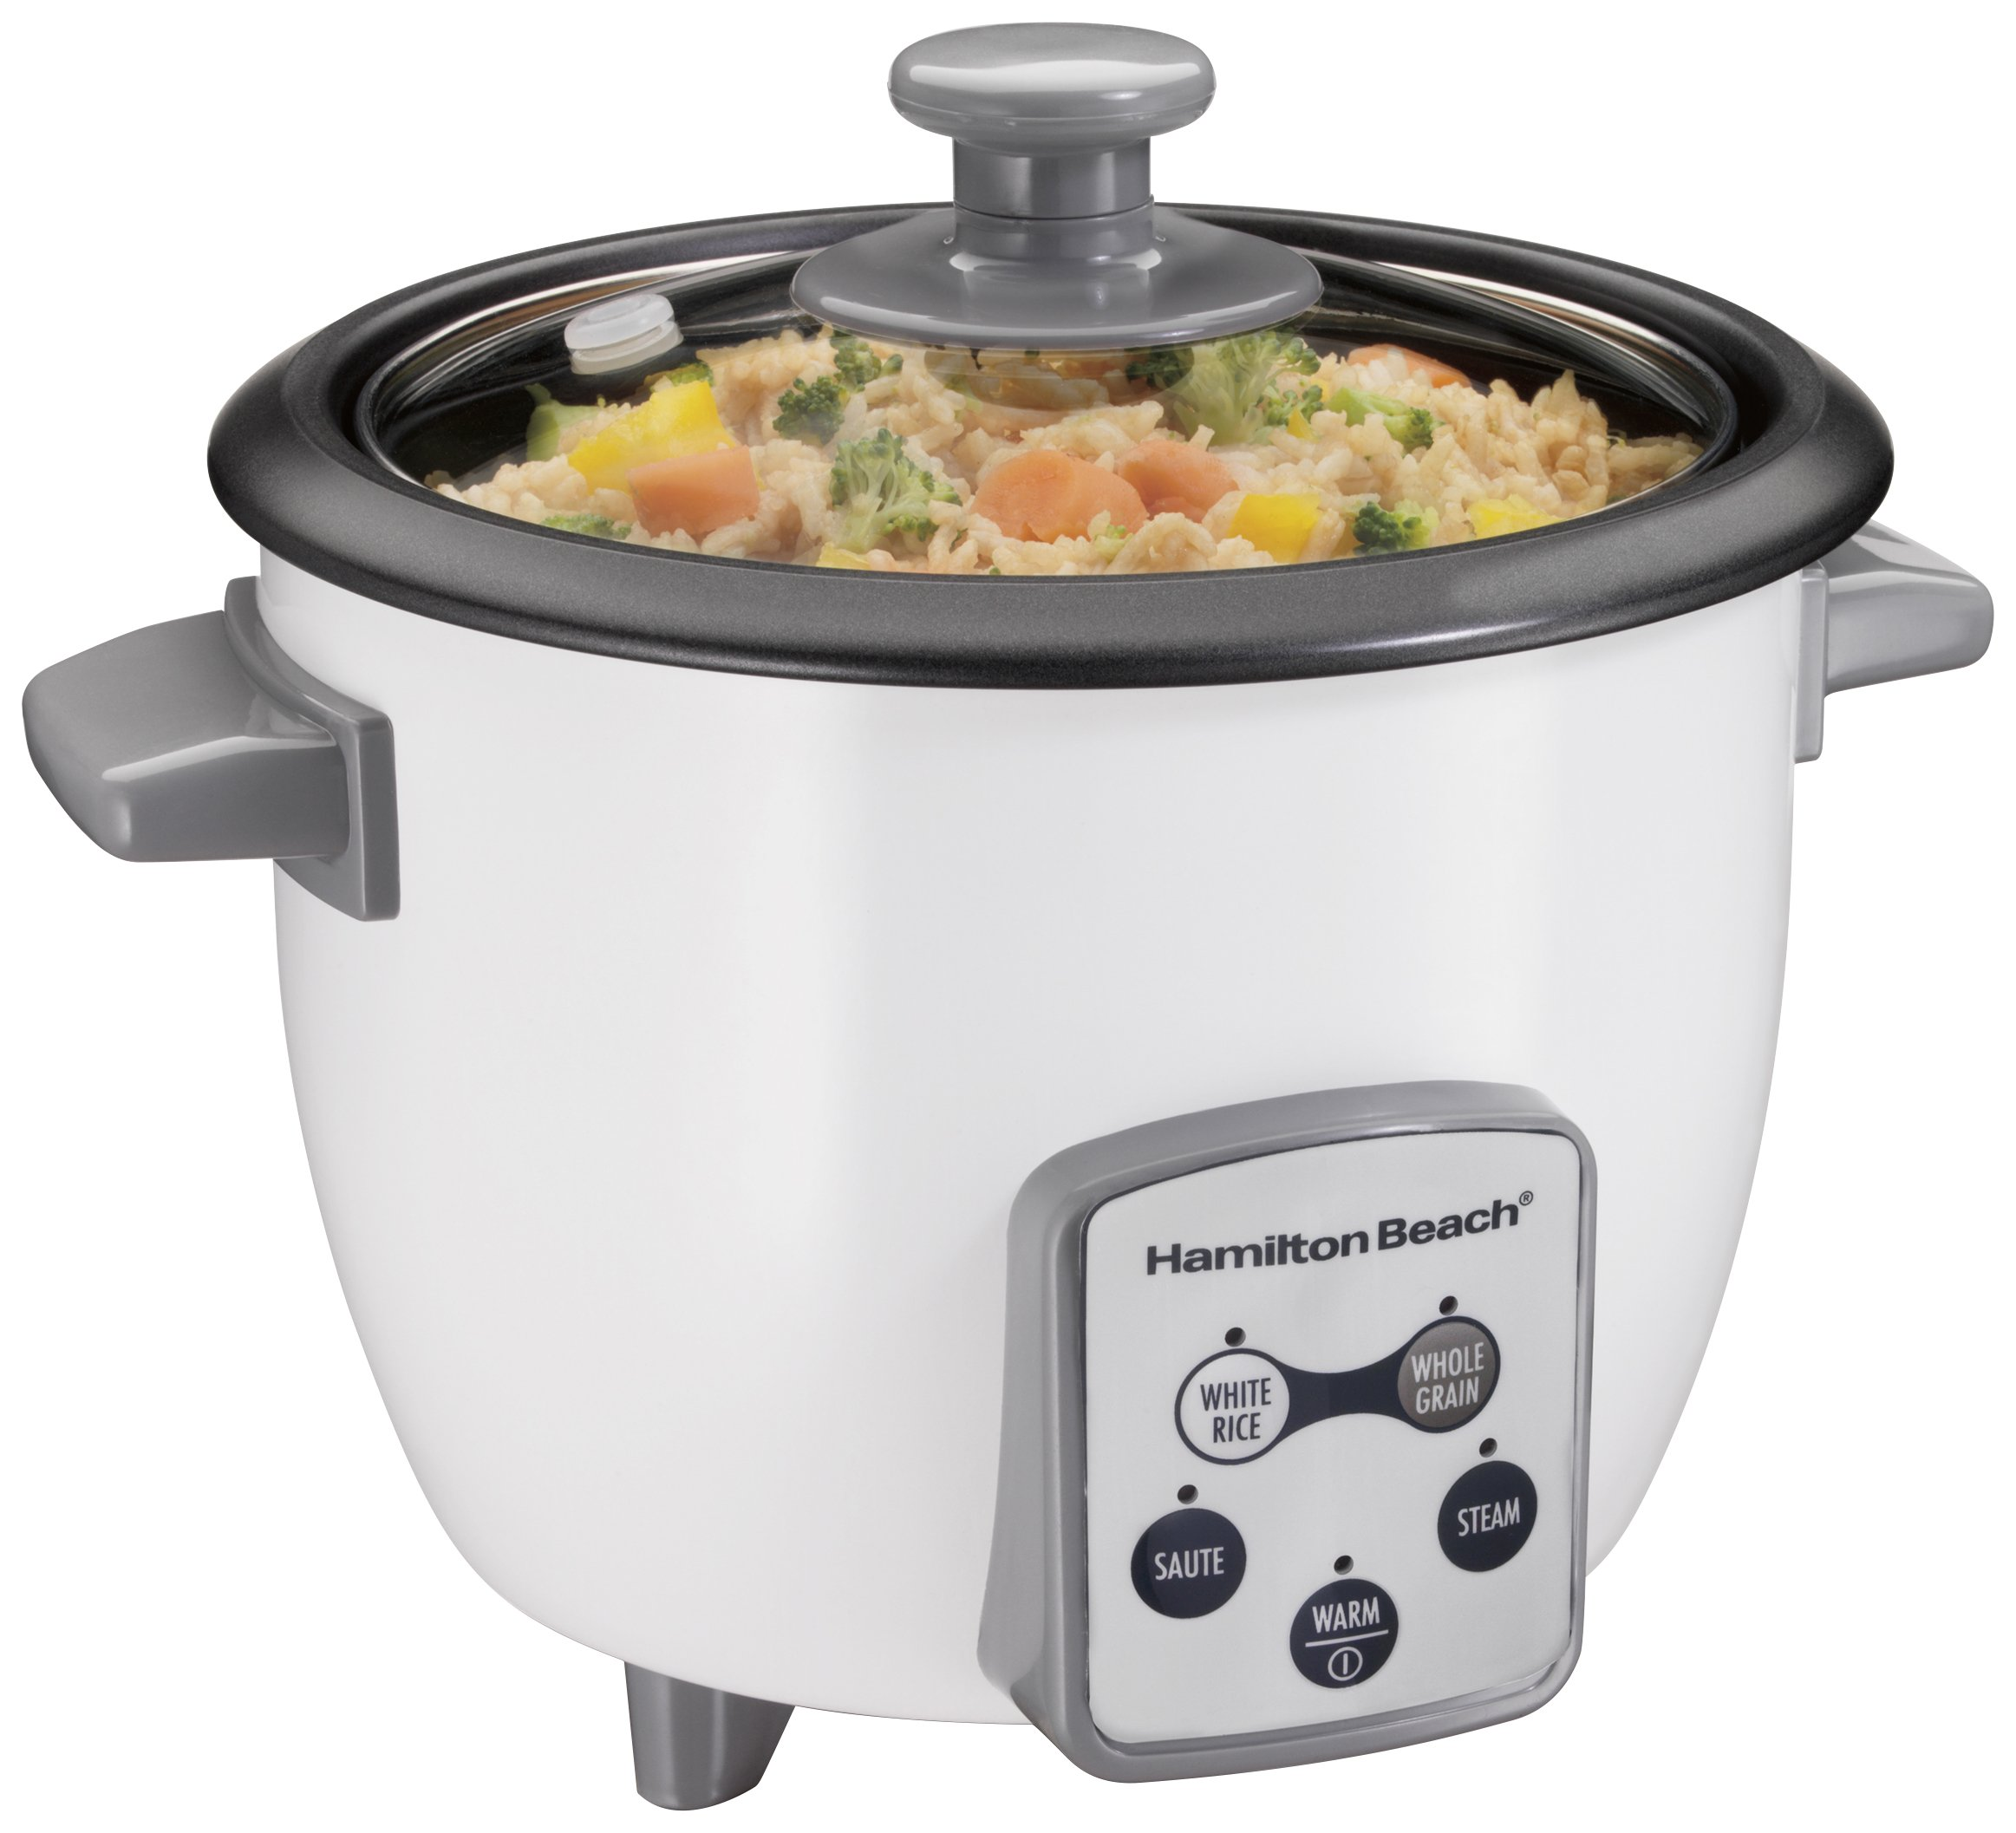 Hamilton Beach Digital Rice Cooker (37506)